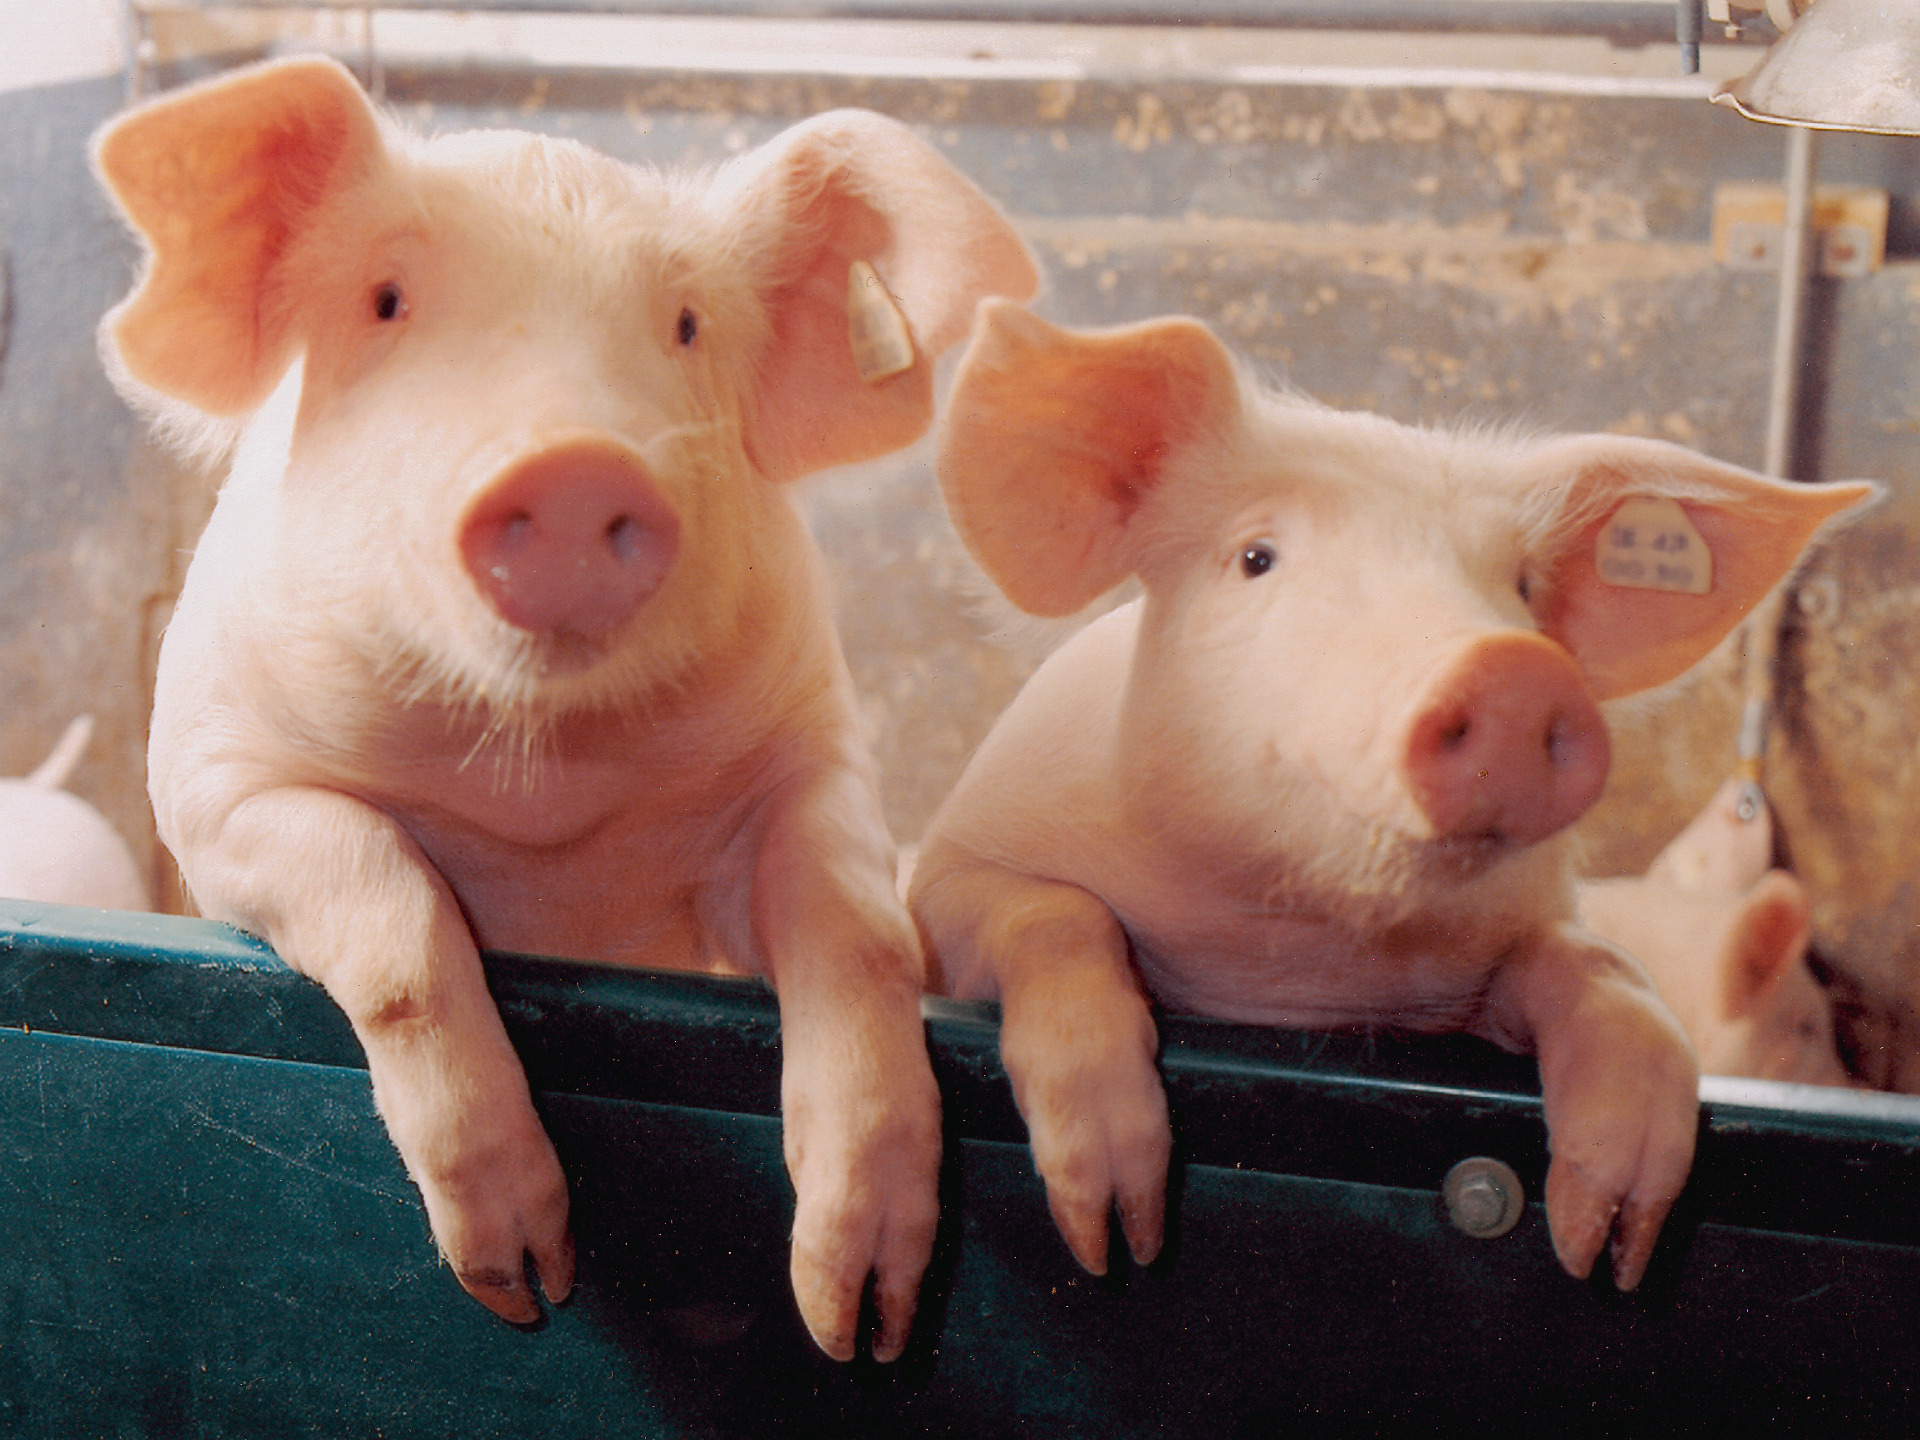 Pigs Images Two Little Piggies HD Wallpaper And Background Photos